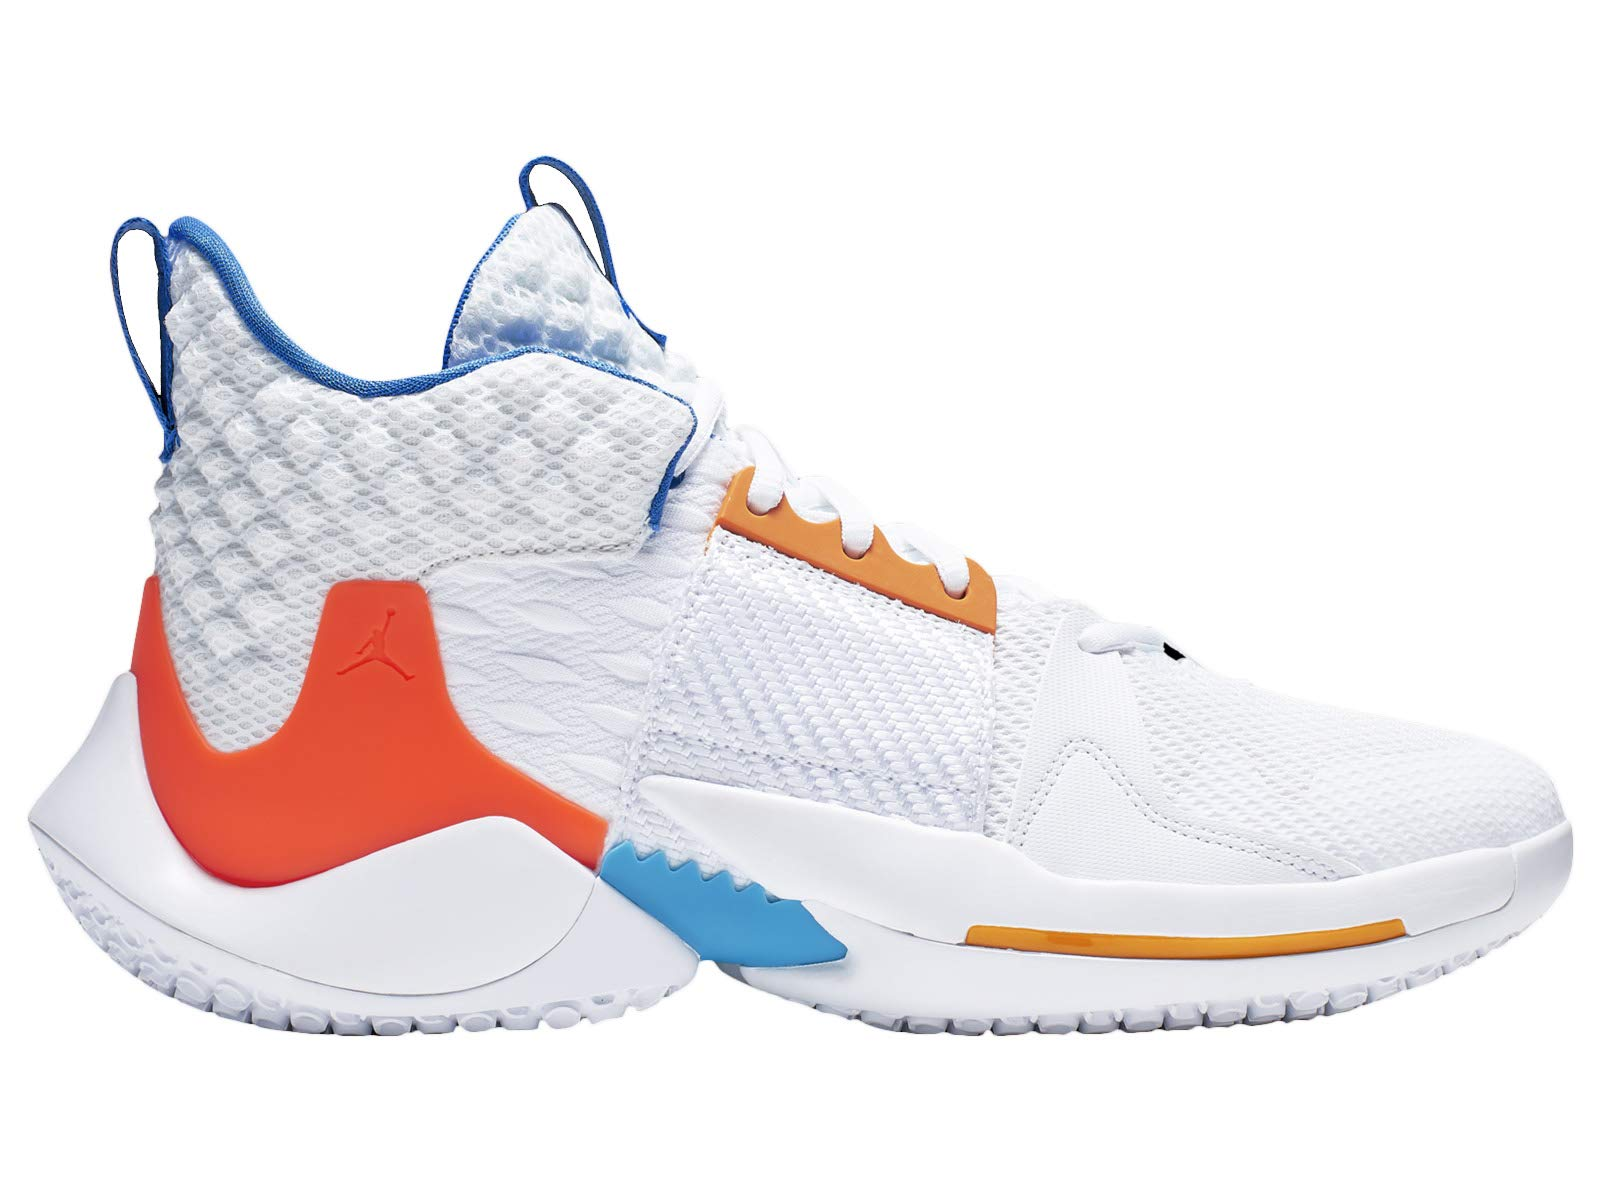 russell westbrook white shoes